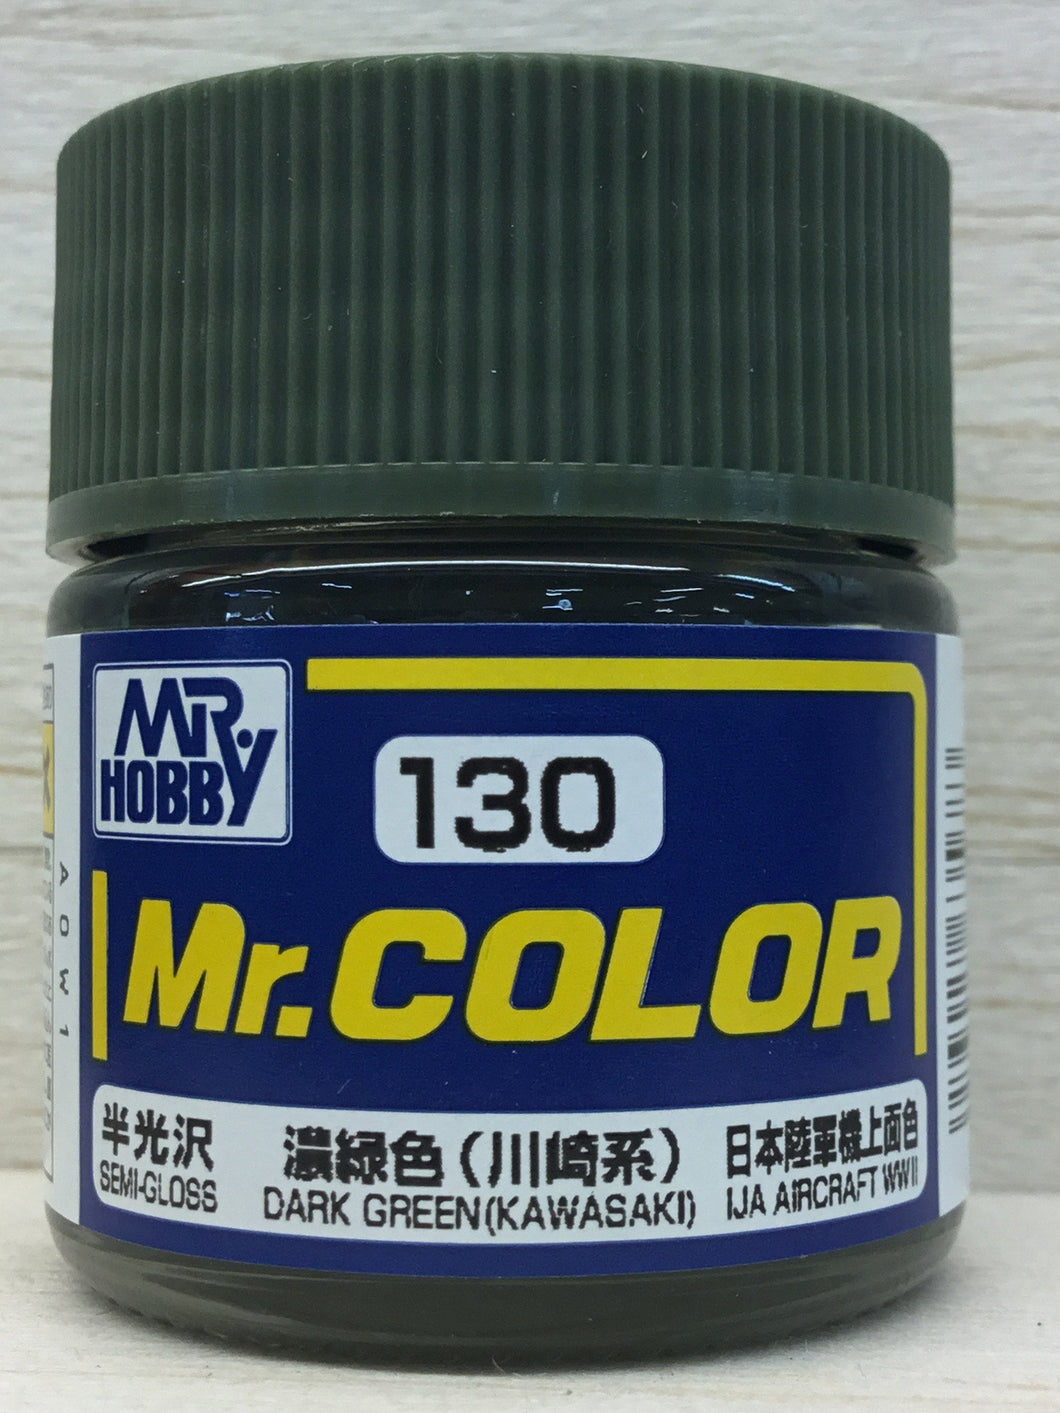 GUNZE MR COLOR C130 SEMI GLOSS DARK GREEN KAWASAKI